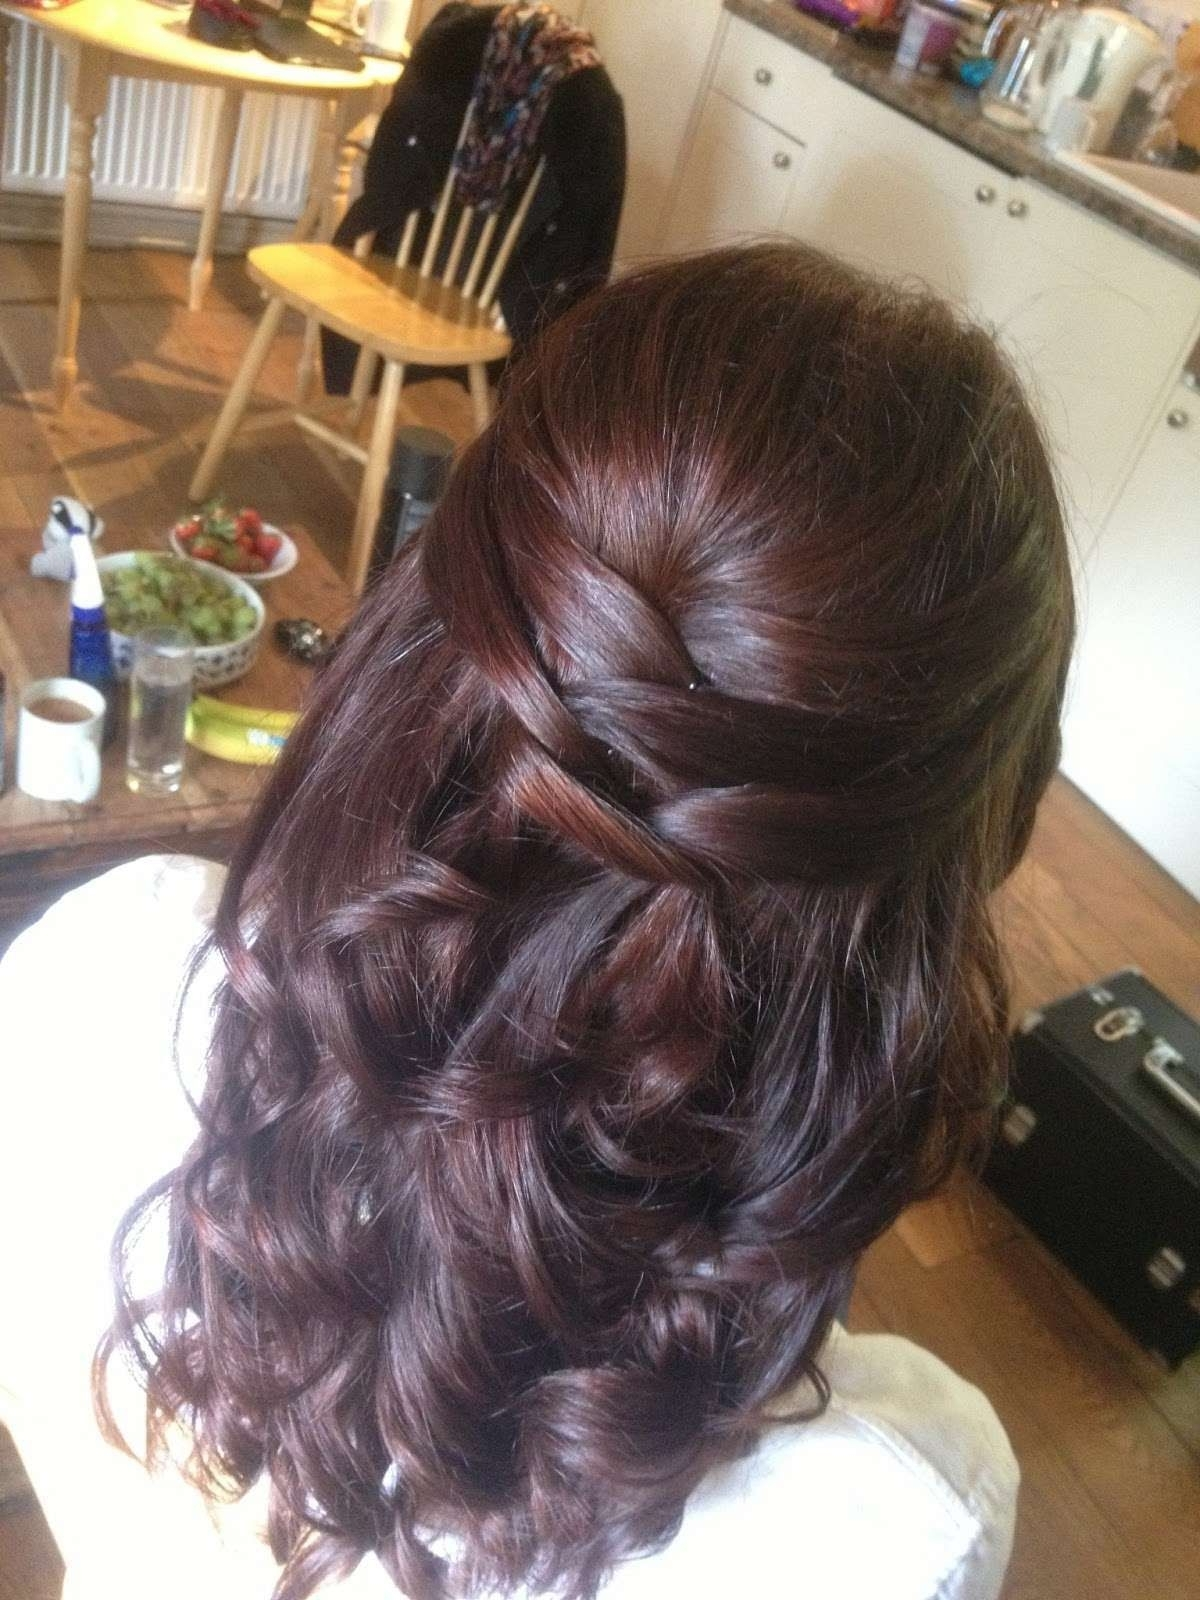 Newest Wedding Hairstyles For Long Straight Hair For Prom Hairstyles For Long Straight Hair Design Free Download (View 9 of 15)